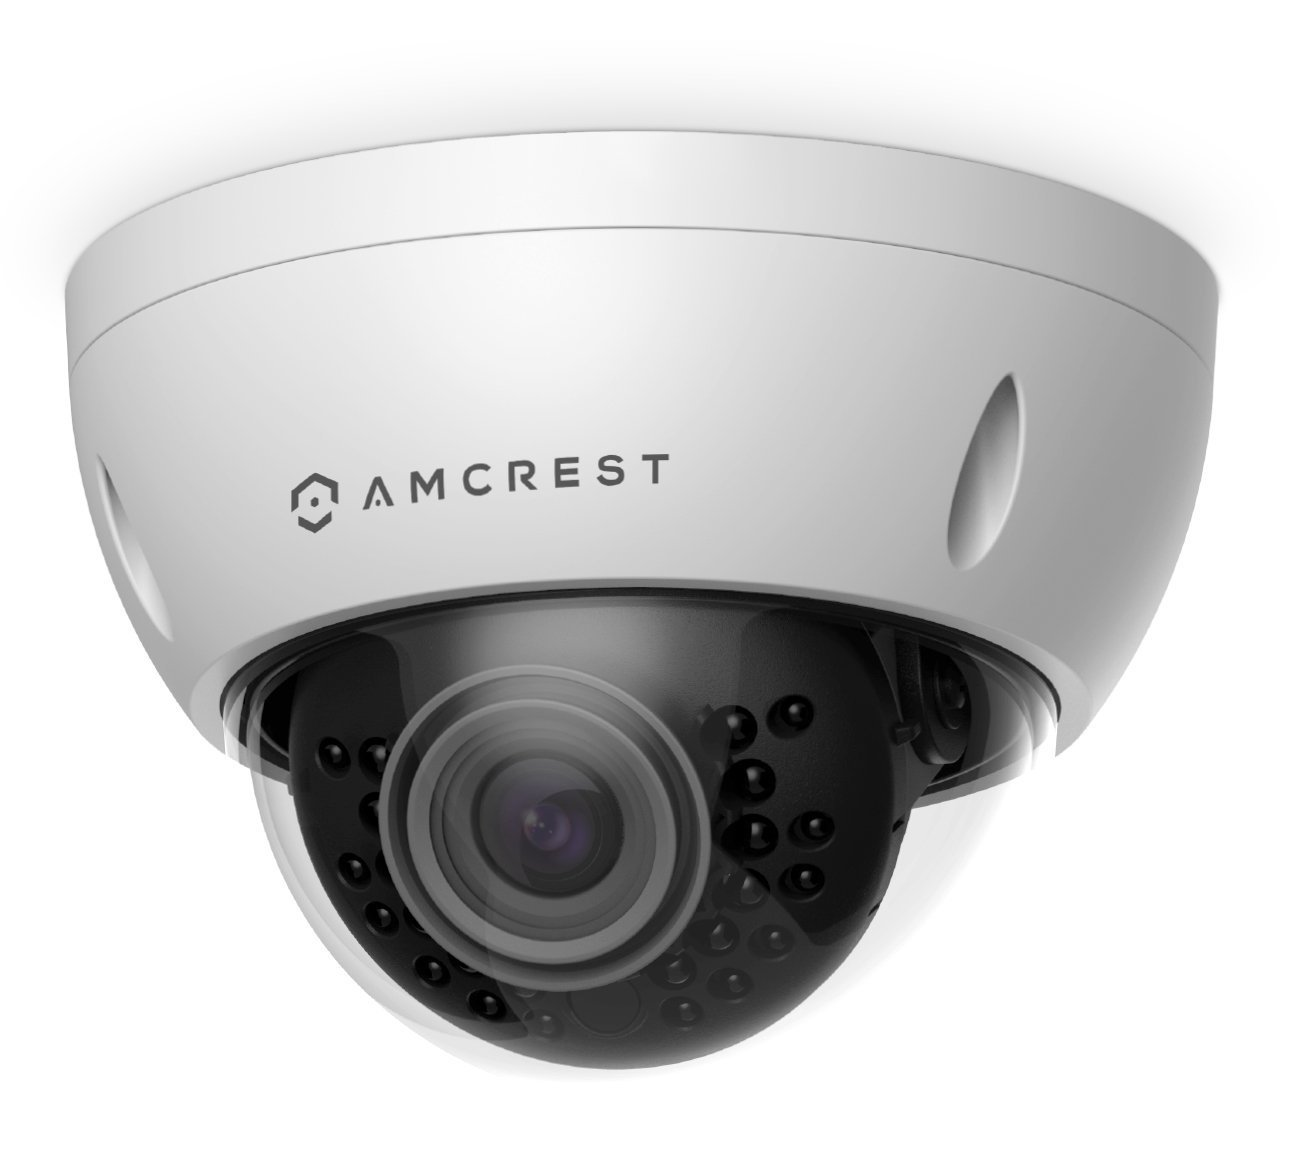 Amcrest ProHD Outdoor 3 Megapixel POE Vandal Dome IP Security Camera – IP67 Weatherproof, IK10 Vandal-Proof, 3MP 2048 TVL , IP3M-956E White